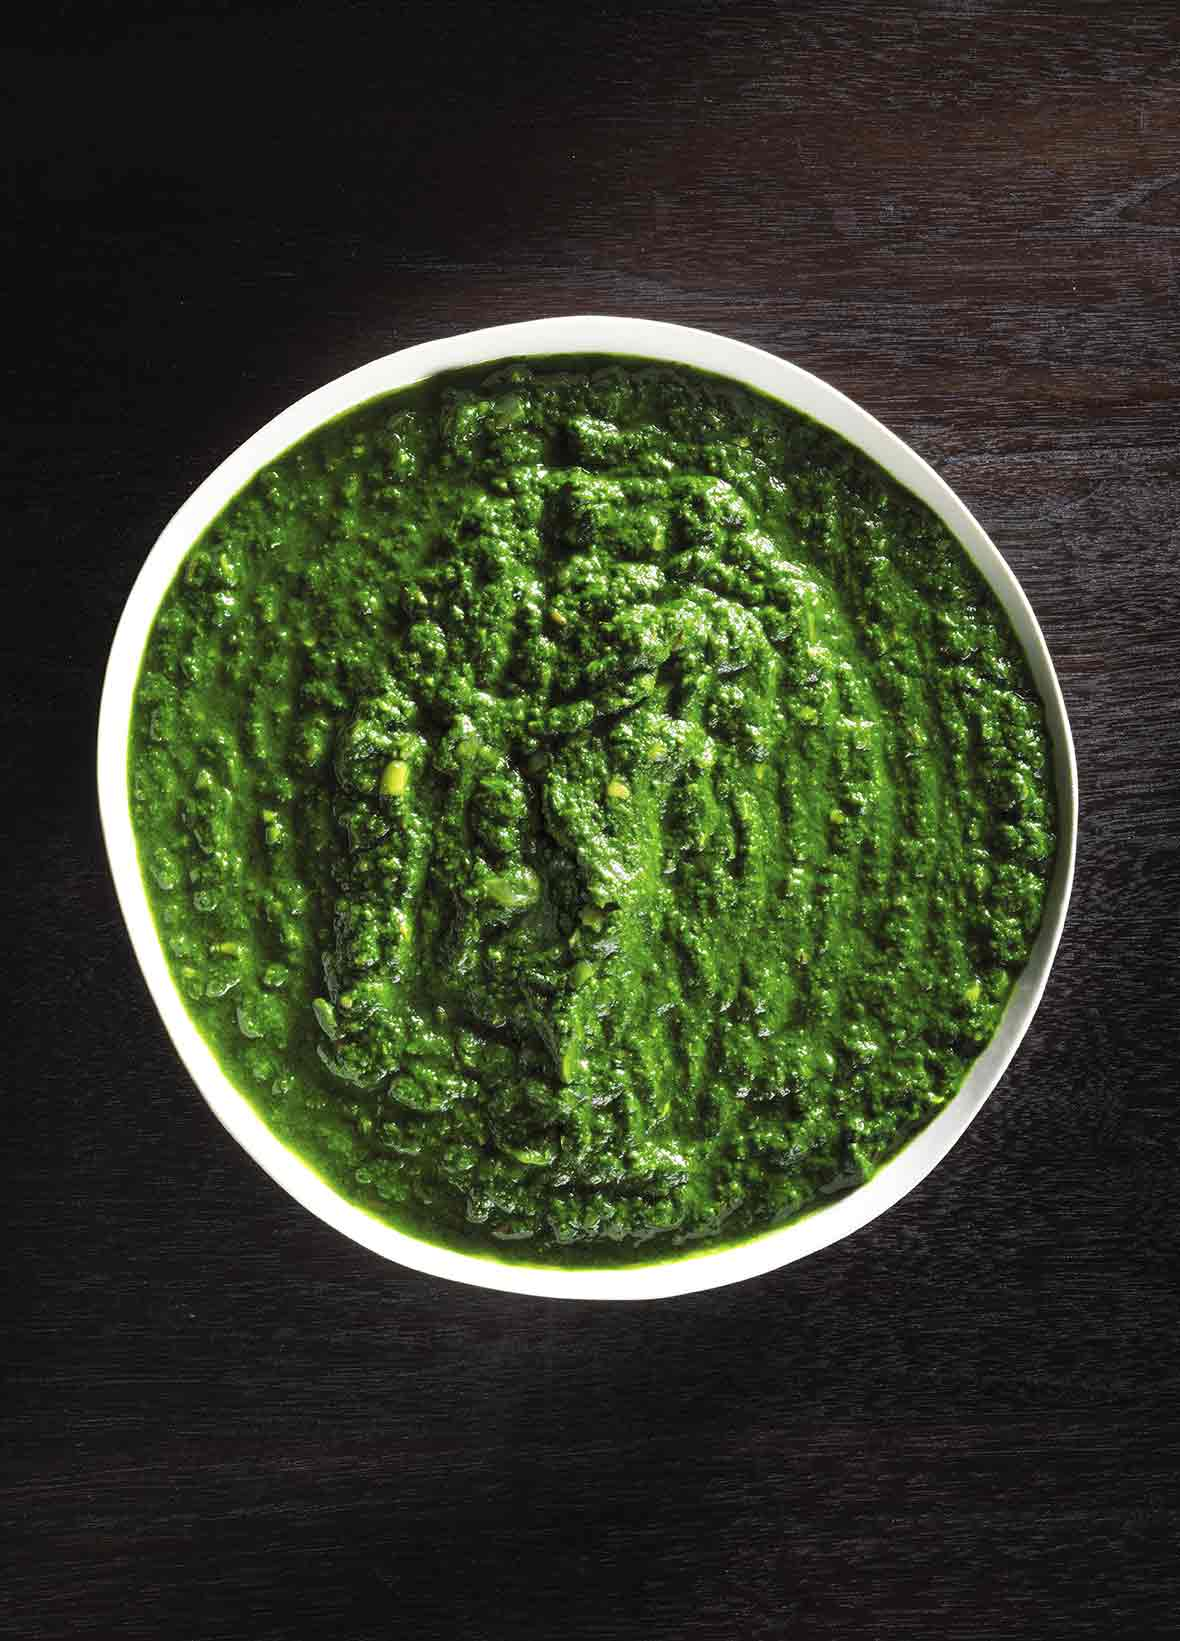 Bowl of Indian creamed spinach on black wood